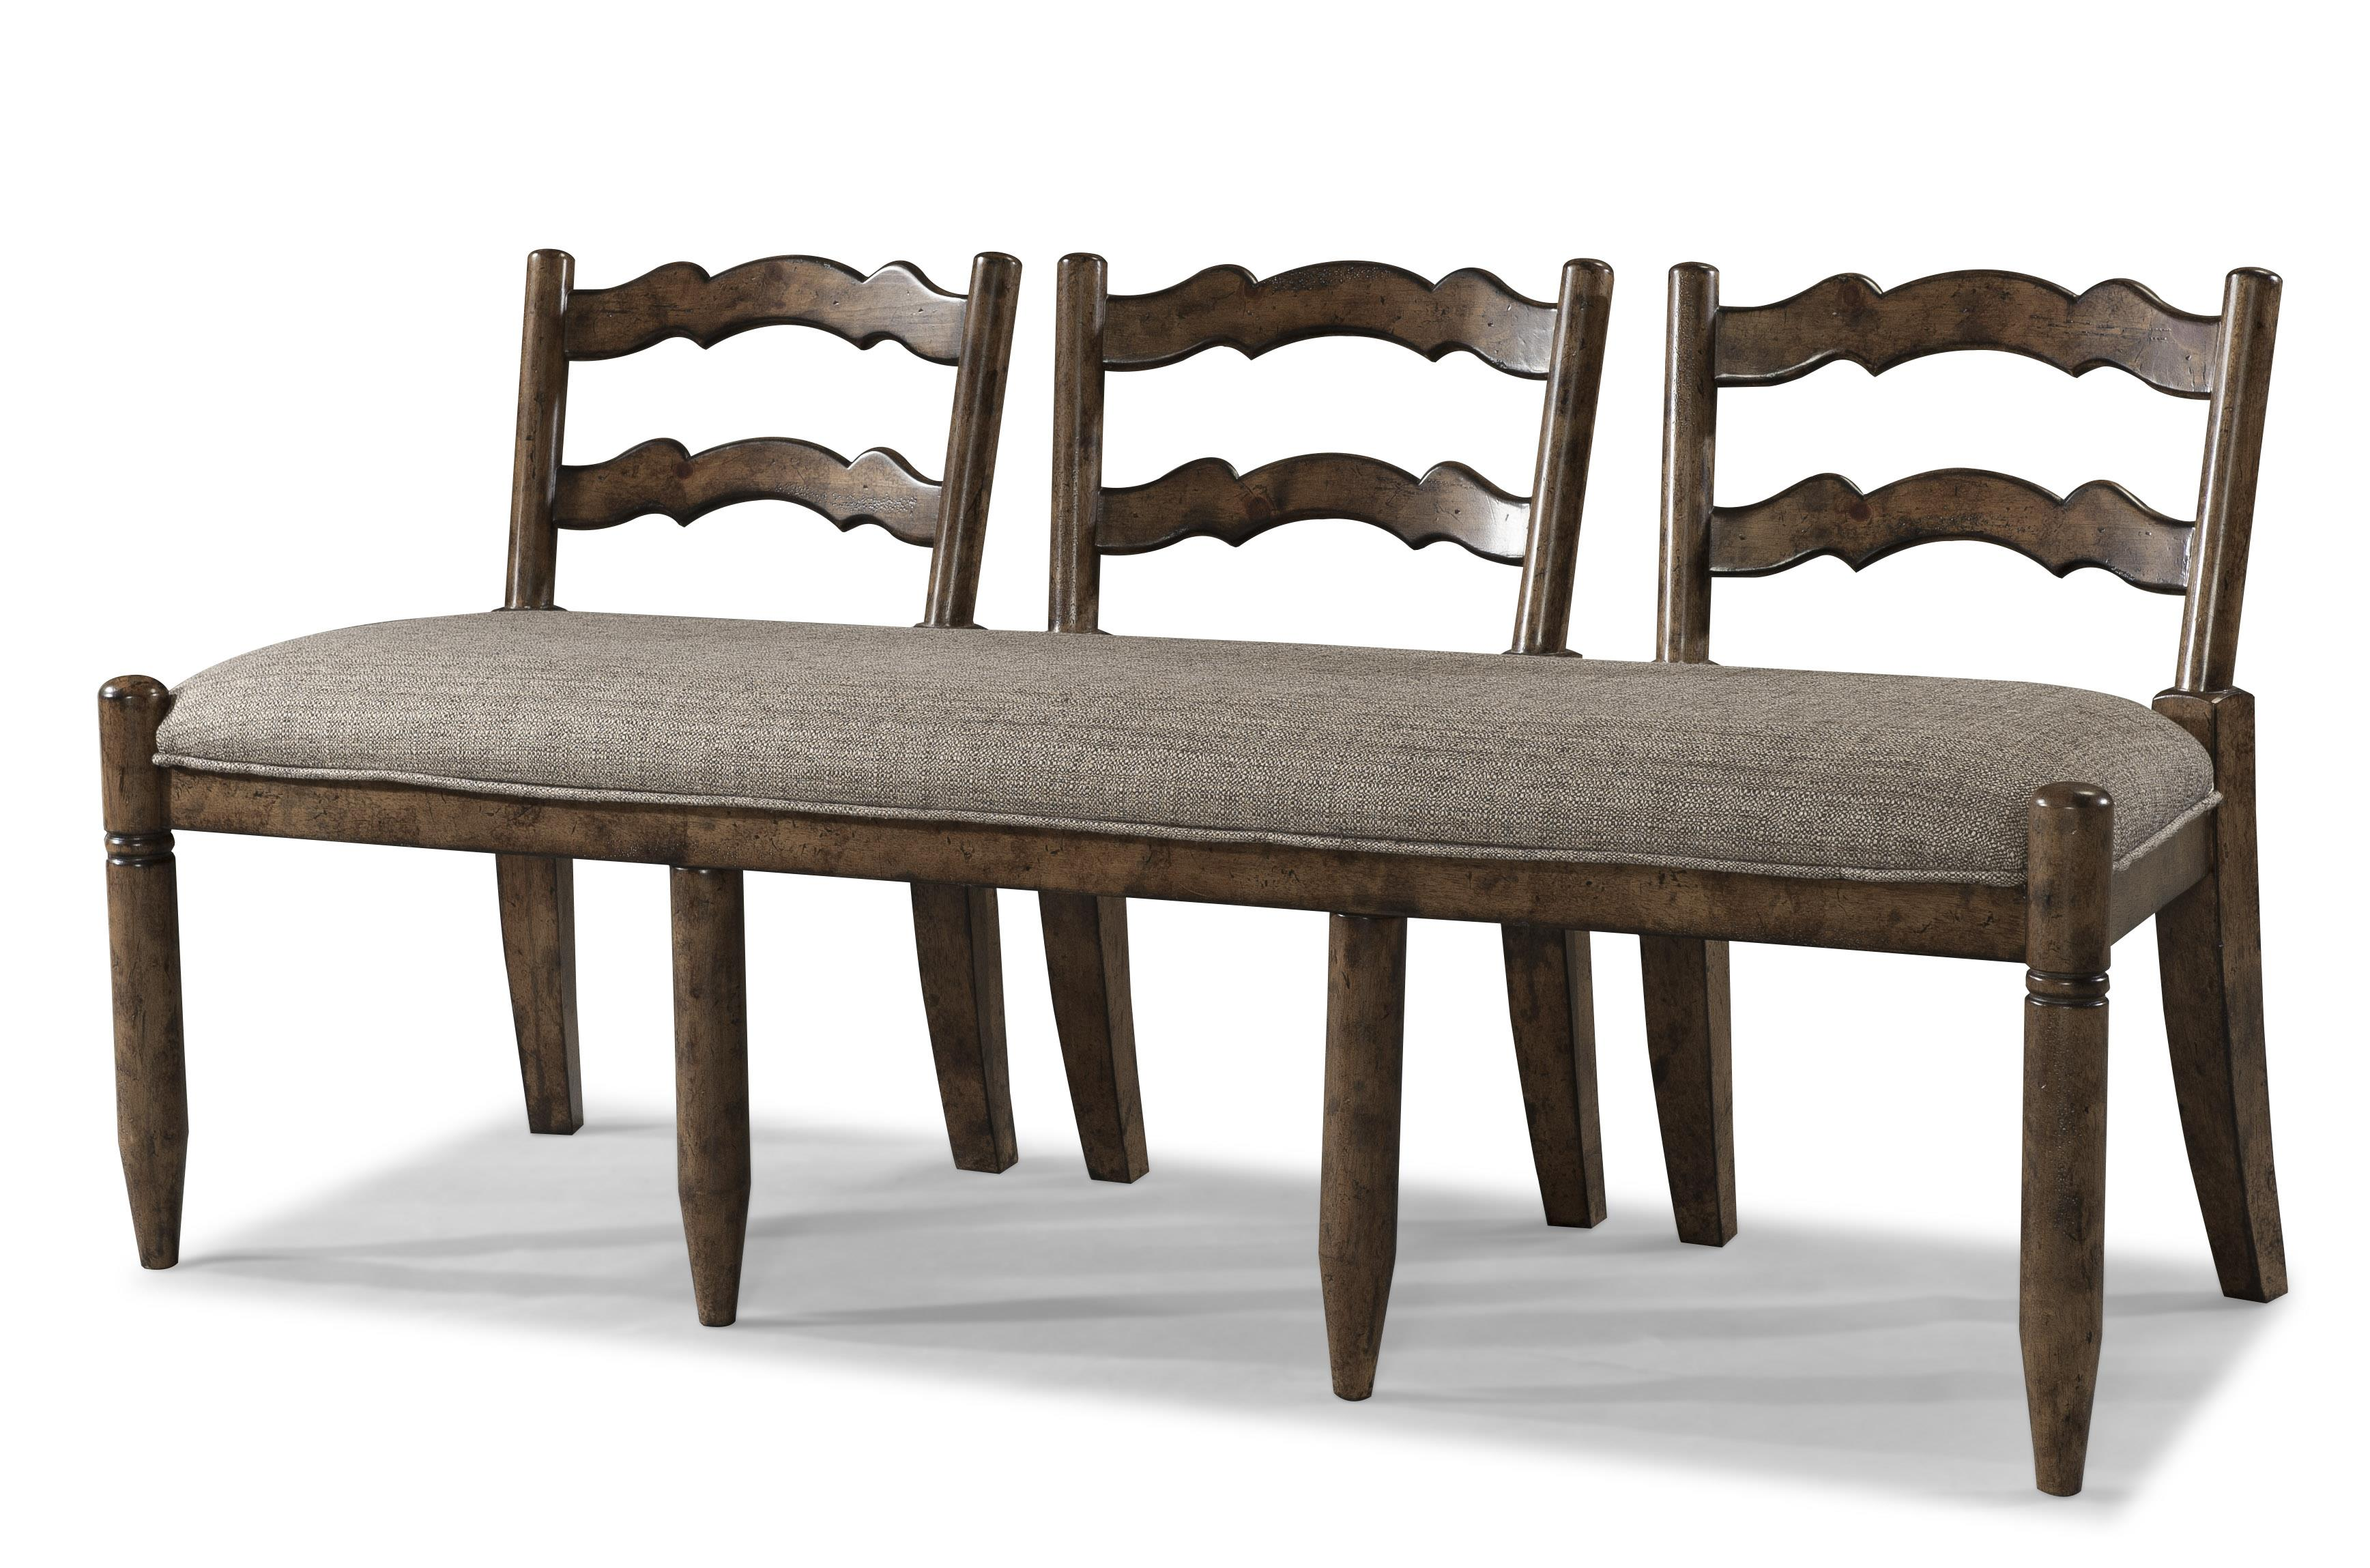 Elliston Place Willow Creek Willow Creek Bench - Item Number: 720617159